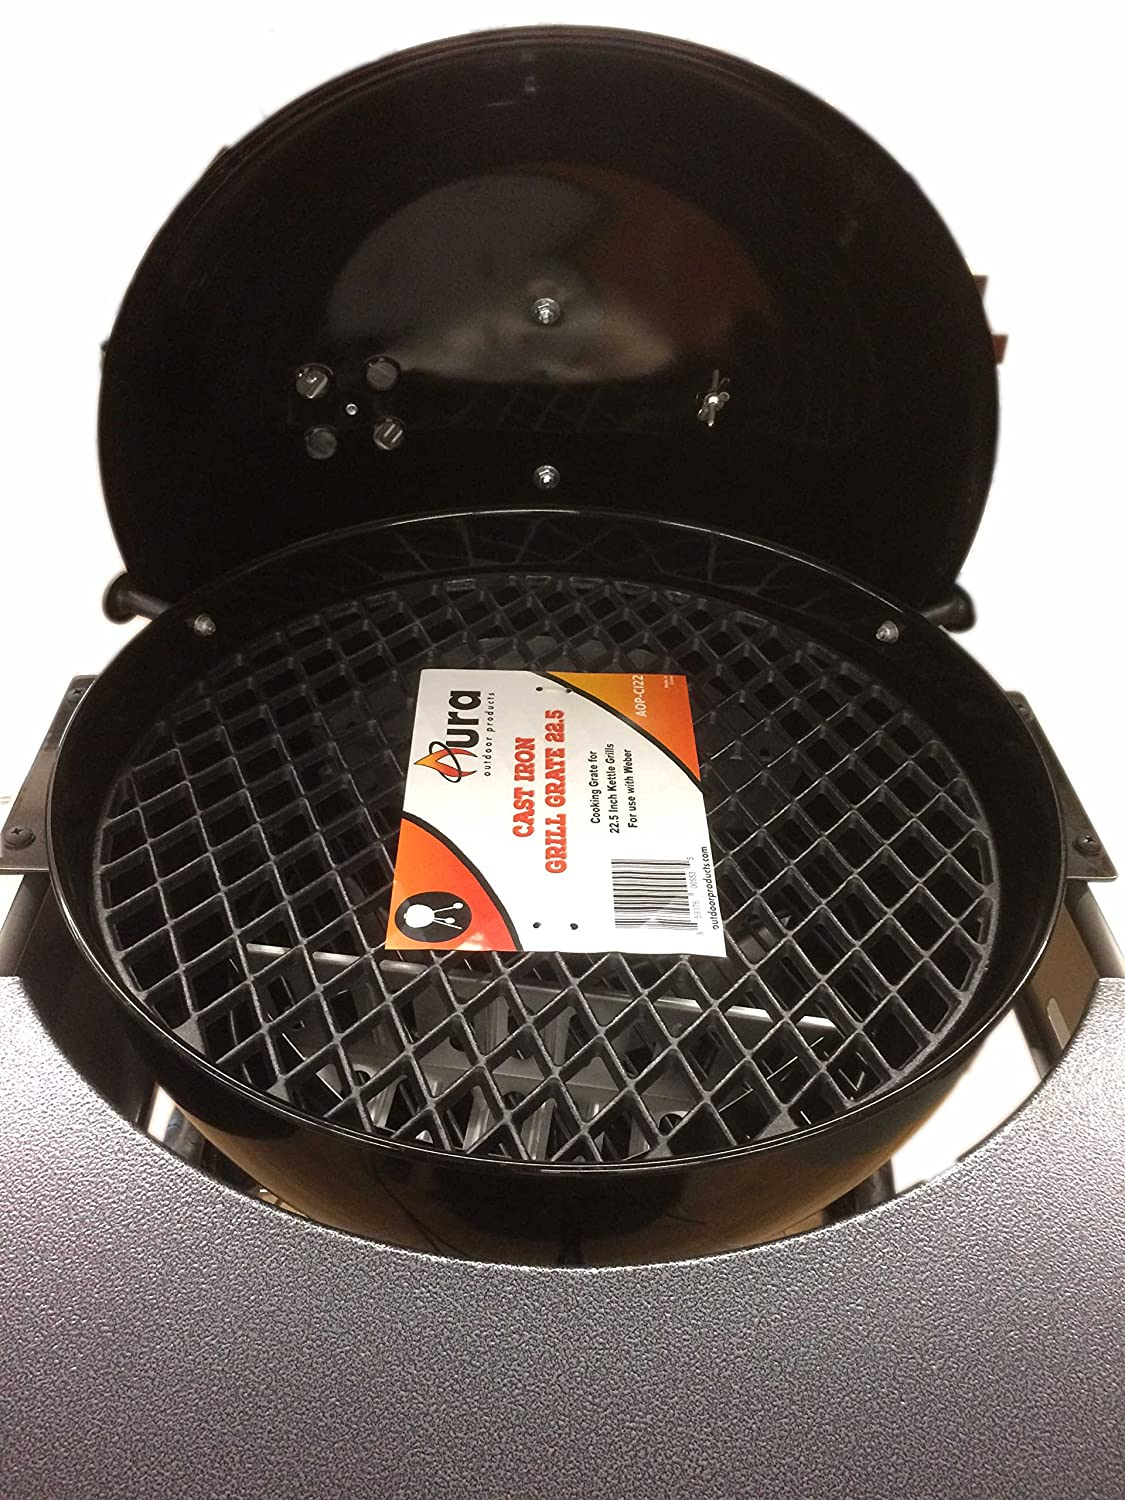 weber kettle 22 cast iron cooking grate. Black Bedroom Furniture Sets. Home Design Ideas